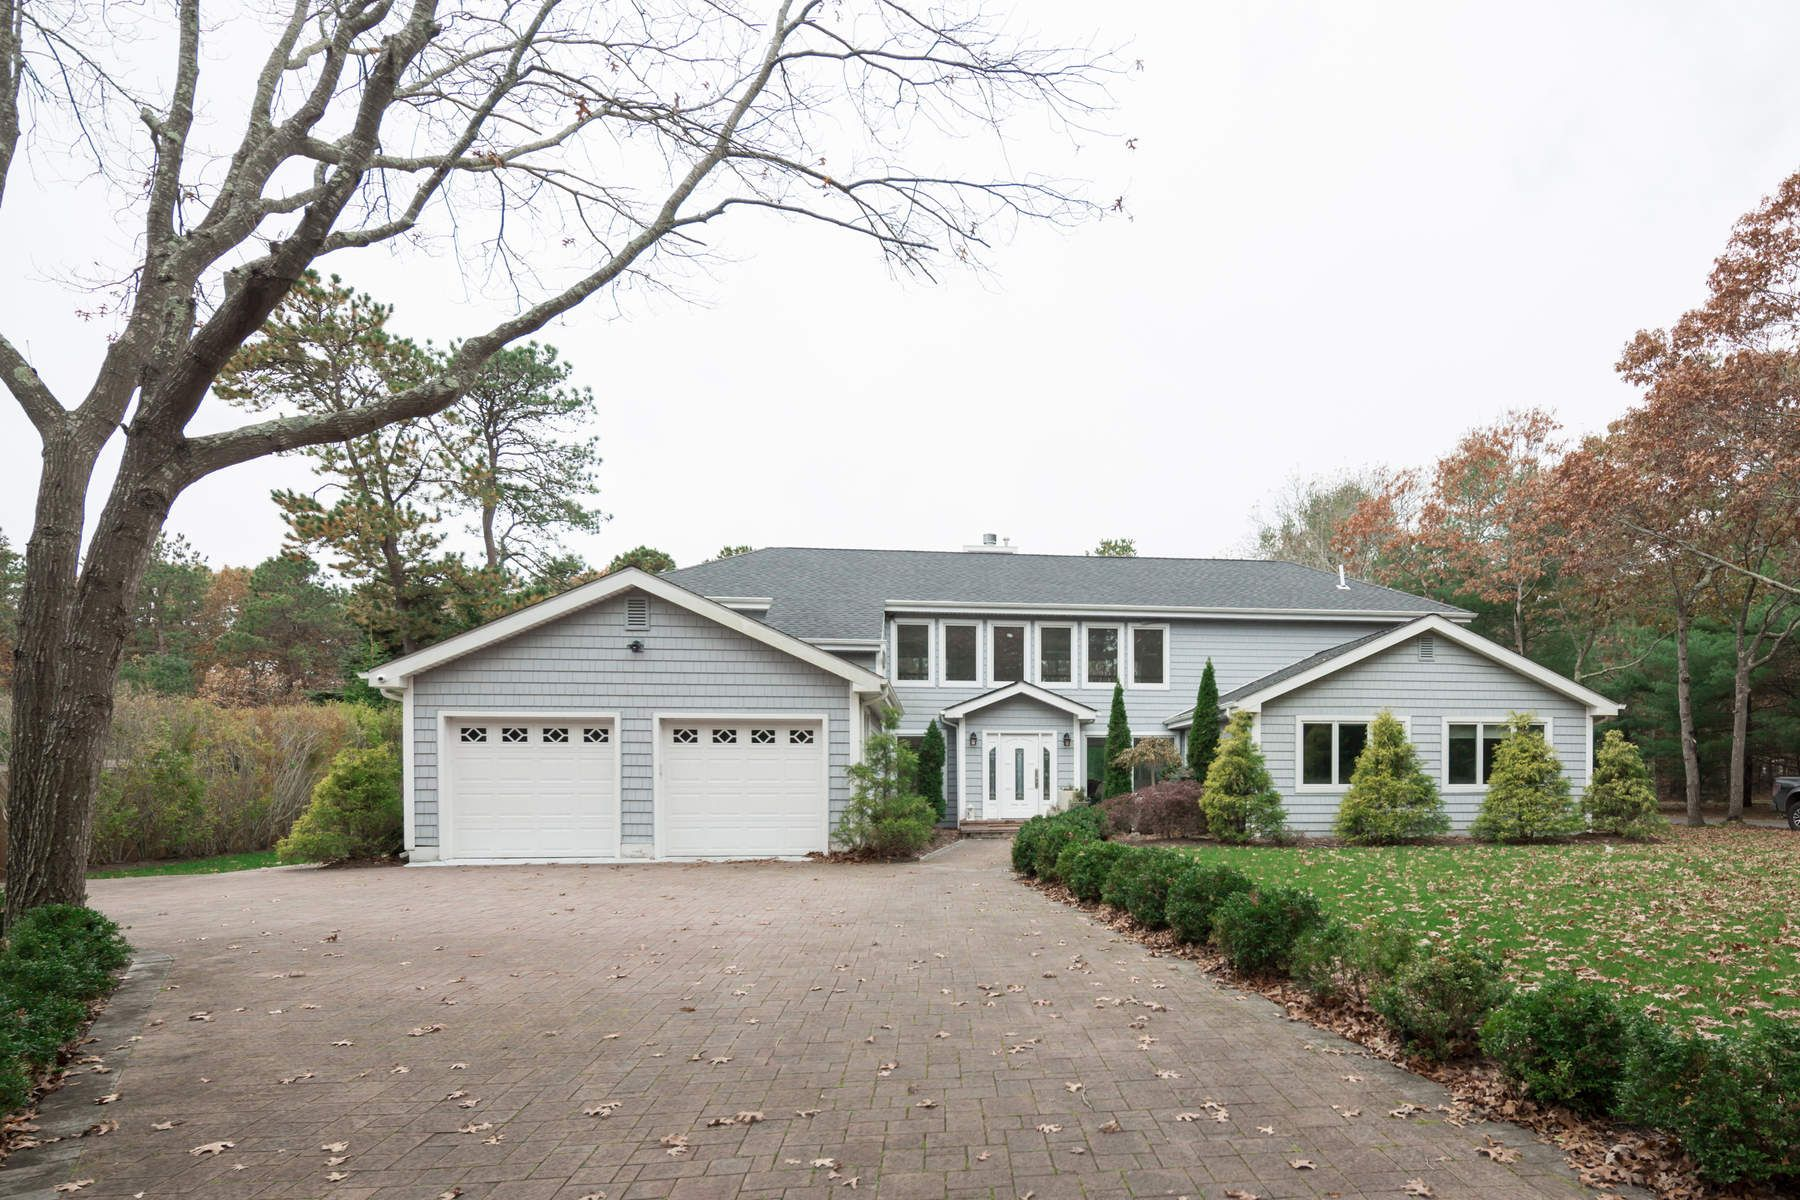 Single Family Home for Rent at Wainscott Light Filled 4 Bdrm W/ Pool Wainscott, New York 11975 United States